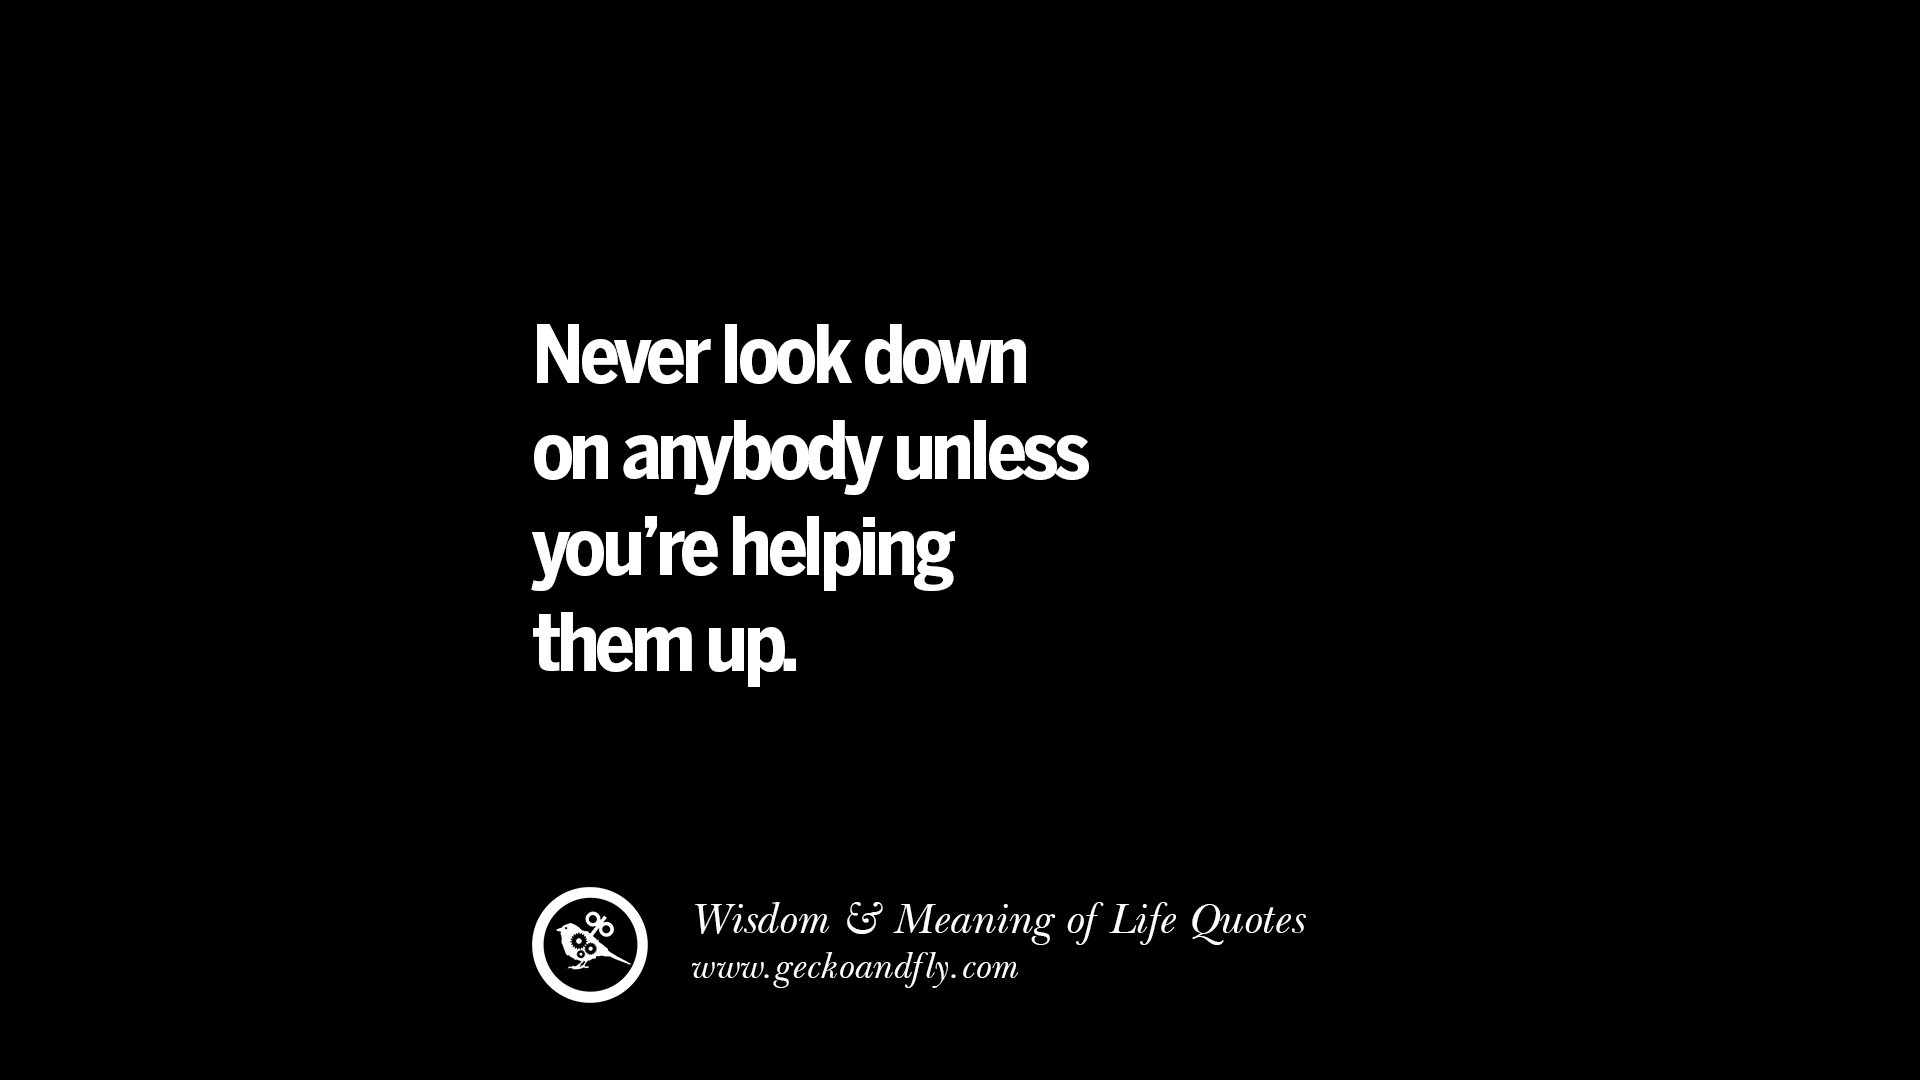 Short Wise Sayings : down on anybody unless youre helping them up. funny wise quotes ...